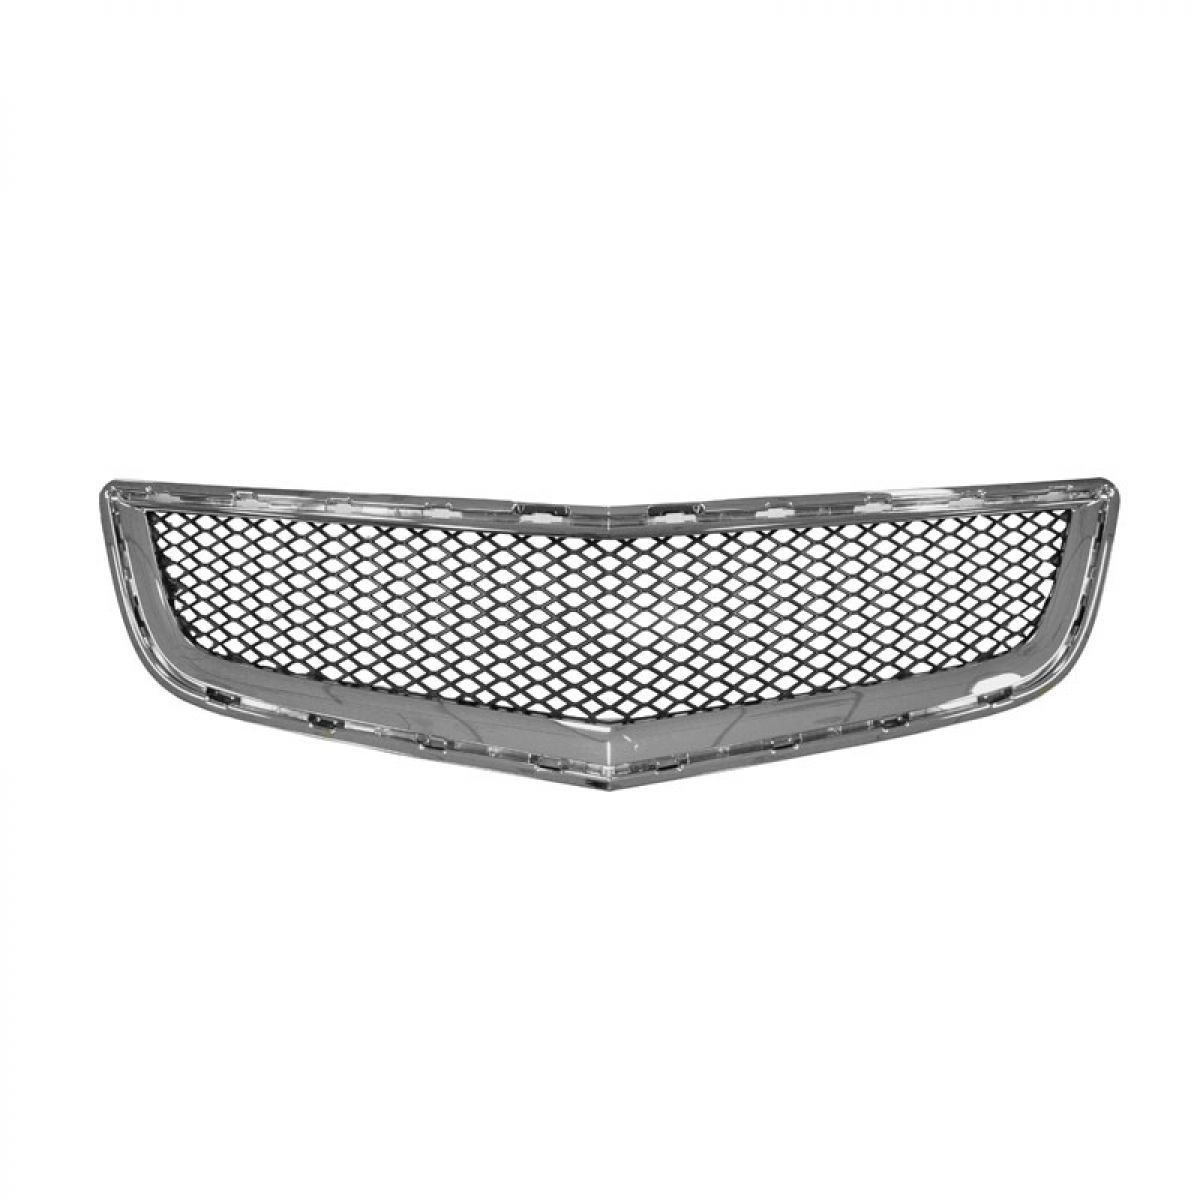 Chrome with Black Mesh Lower Grille Grill 20756061 for 09-12 Chevy Traverse